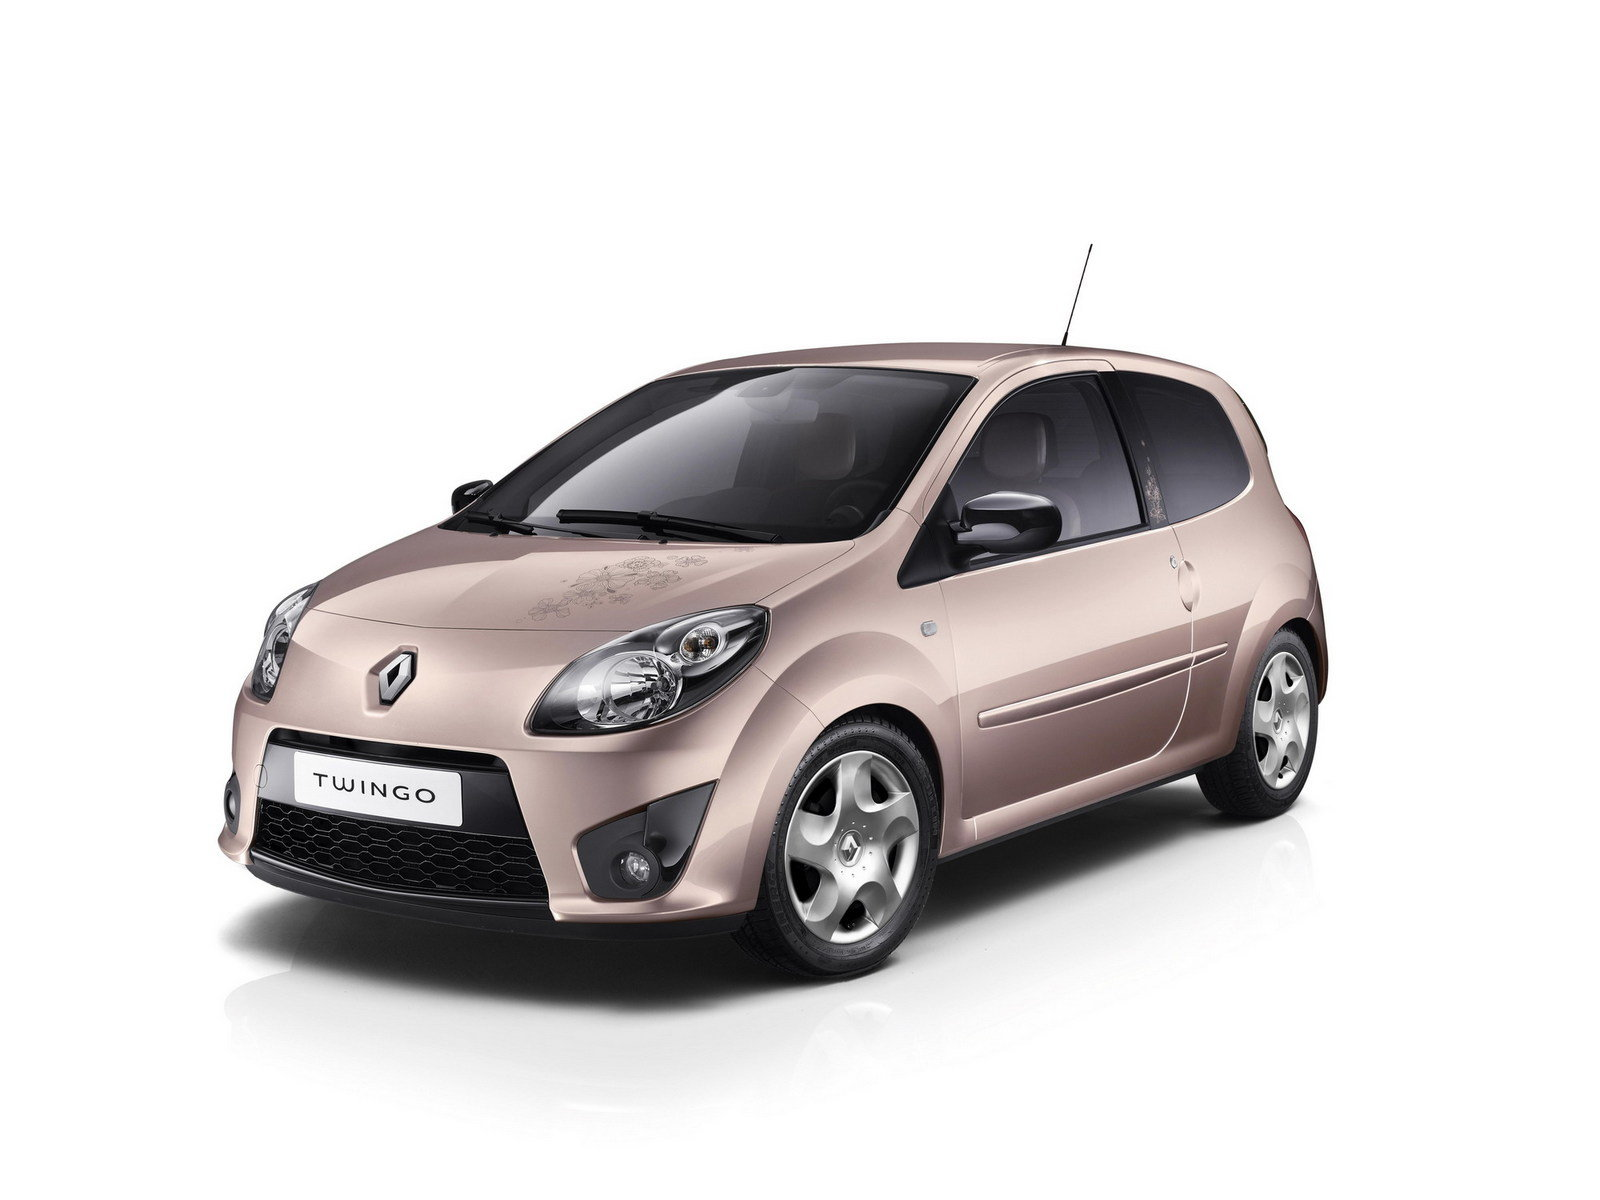 2011 renault twingo miss sixty picture 375289 car review top speed. Black Bedroom Furniture Sets. Home Design Ideas